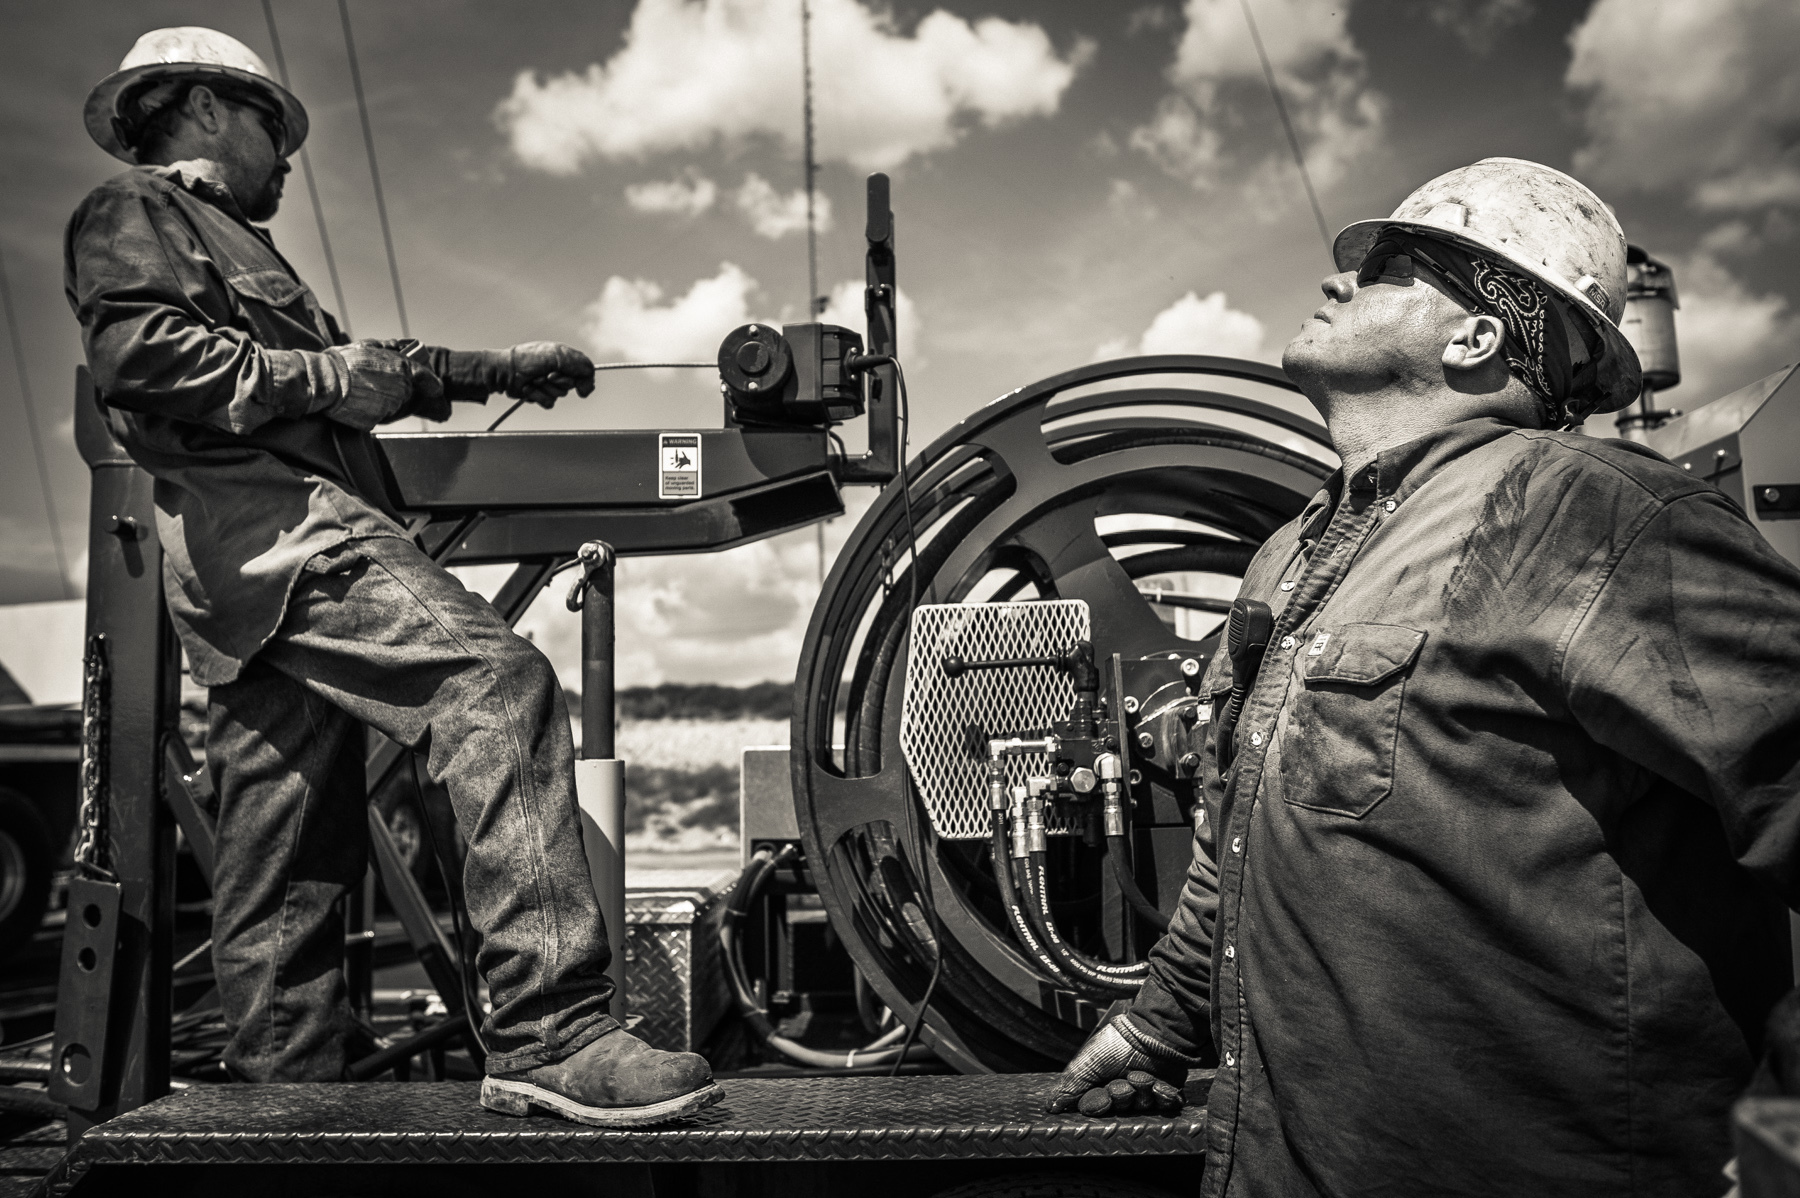 Men from a workover crew lifting a swivel head into place to complete the fracking of an oil well. Crews work in alternating 12 hour shifts throughout the entire drilling and fracking process. The work never stops on a drill site.